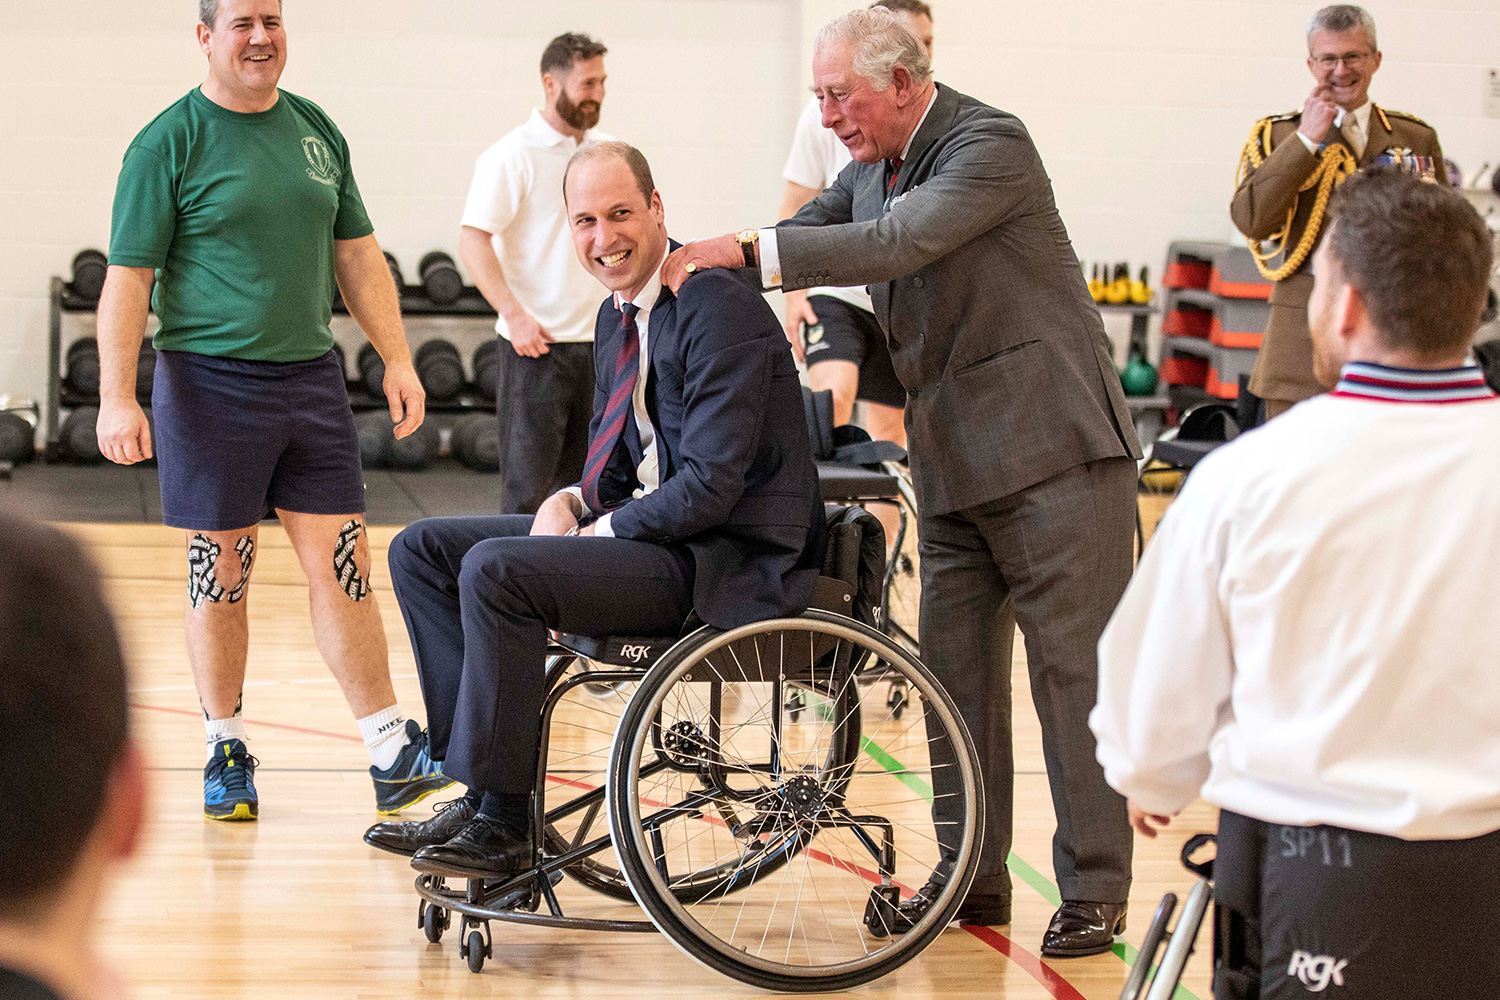 The Duke of Cambridge has his shoulders rubbed by the Prince of Wales after he attempted and failed to throw a basket ball into the hoop while playing wheelchair basket ball during a visit to the Defence Medical Rehabilitation Centre Stanford Hall, Stanford on Soar, Loughborough, where they met with patients and staff and had a tour of the gym and prosthetics workshop.